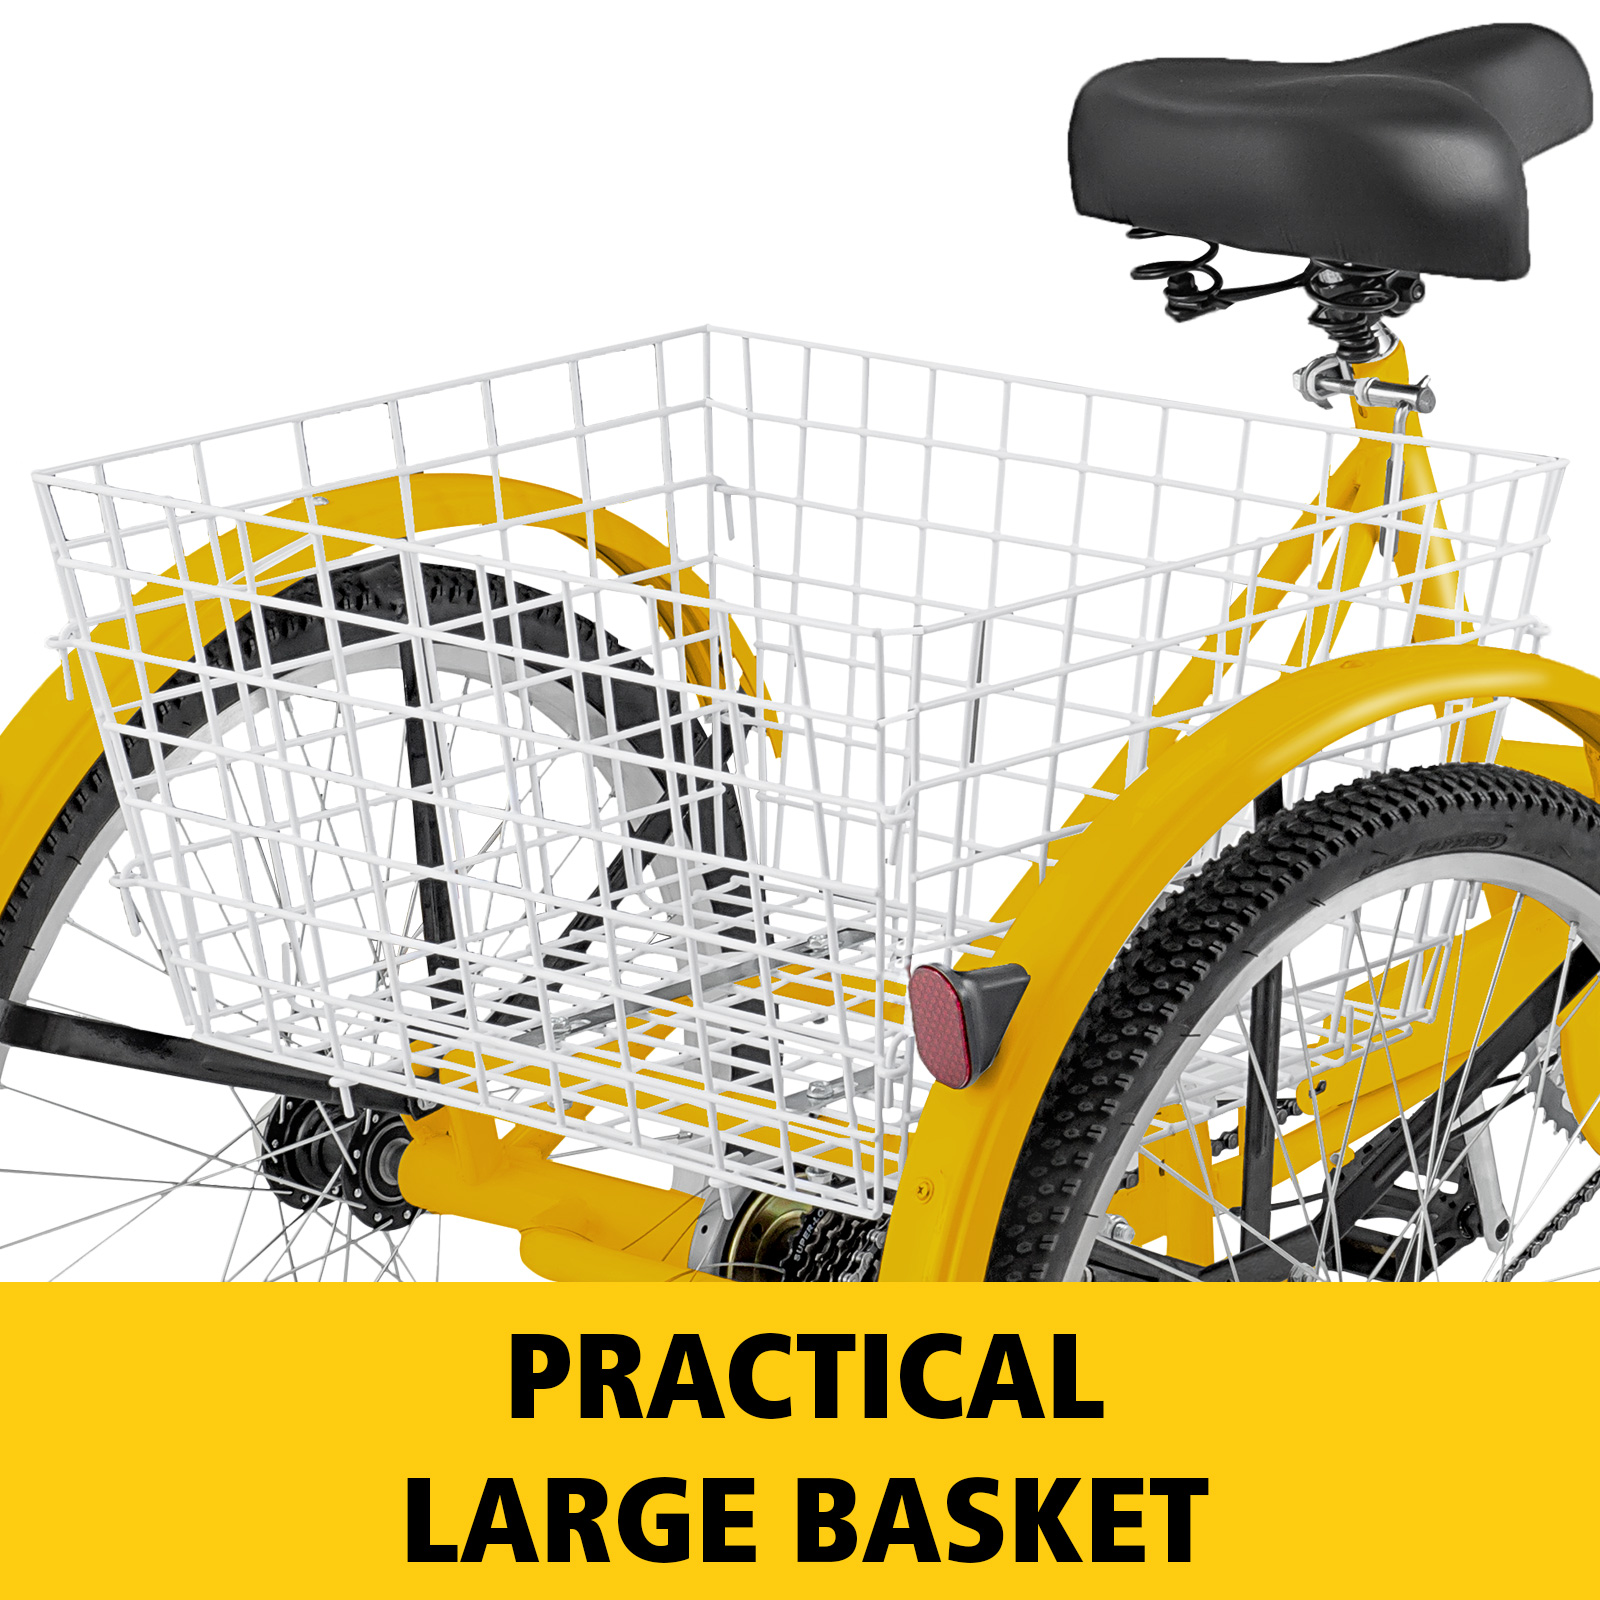 20-24-26-034-Adult-Tricycle-1-7-Speed-3-Wheel-Large-Basket-For-Shopping-Optional thumbnail 271